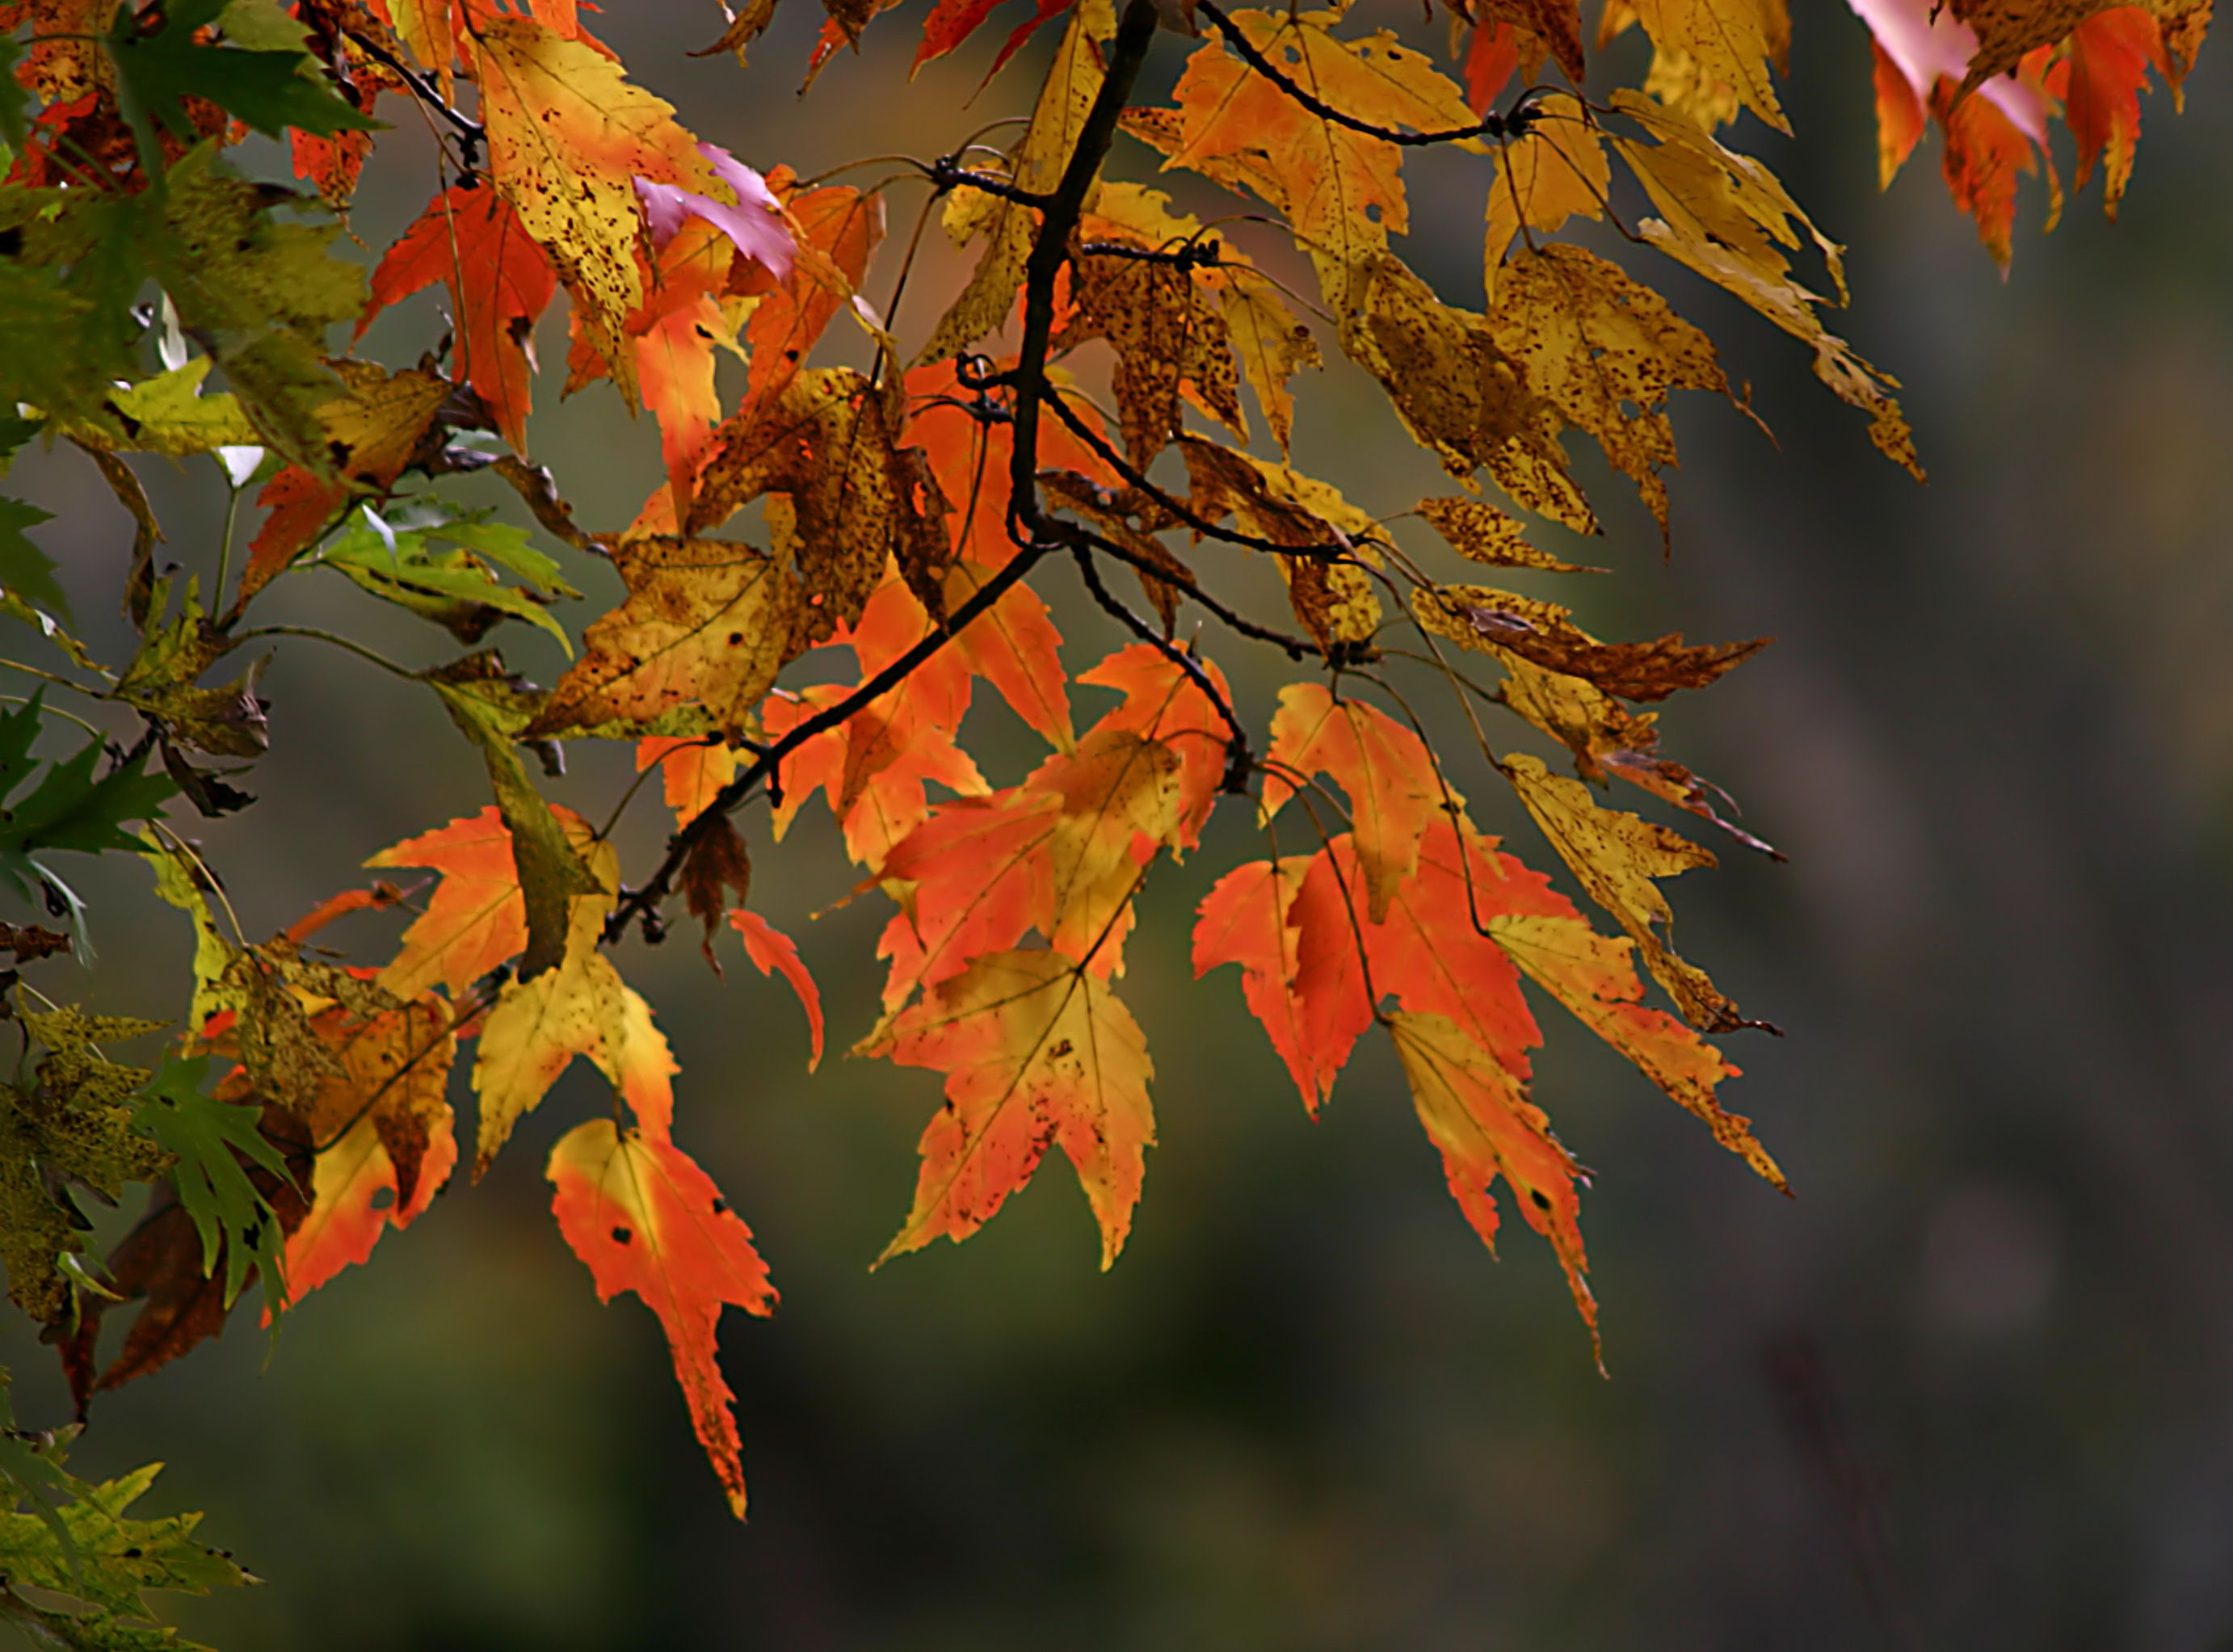 images of autumn flowers | Autumn Flowers Bring A Vibrant Display Of Bright Seasonal Colours